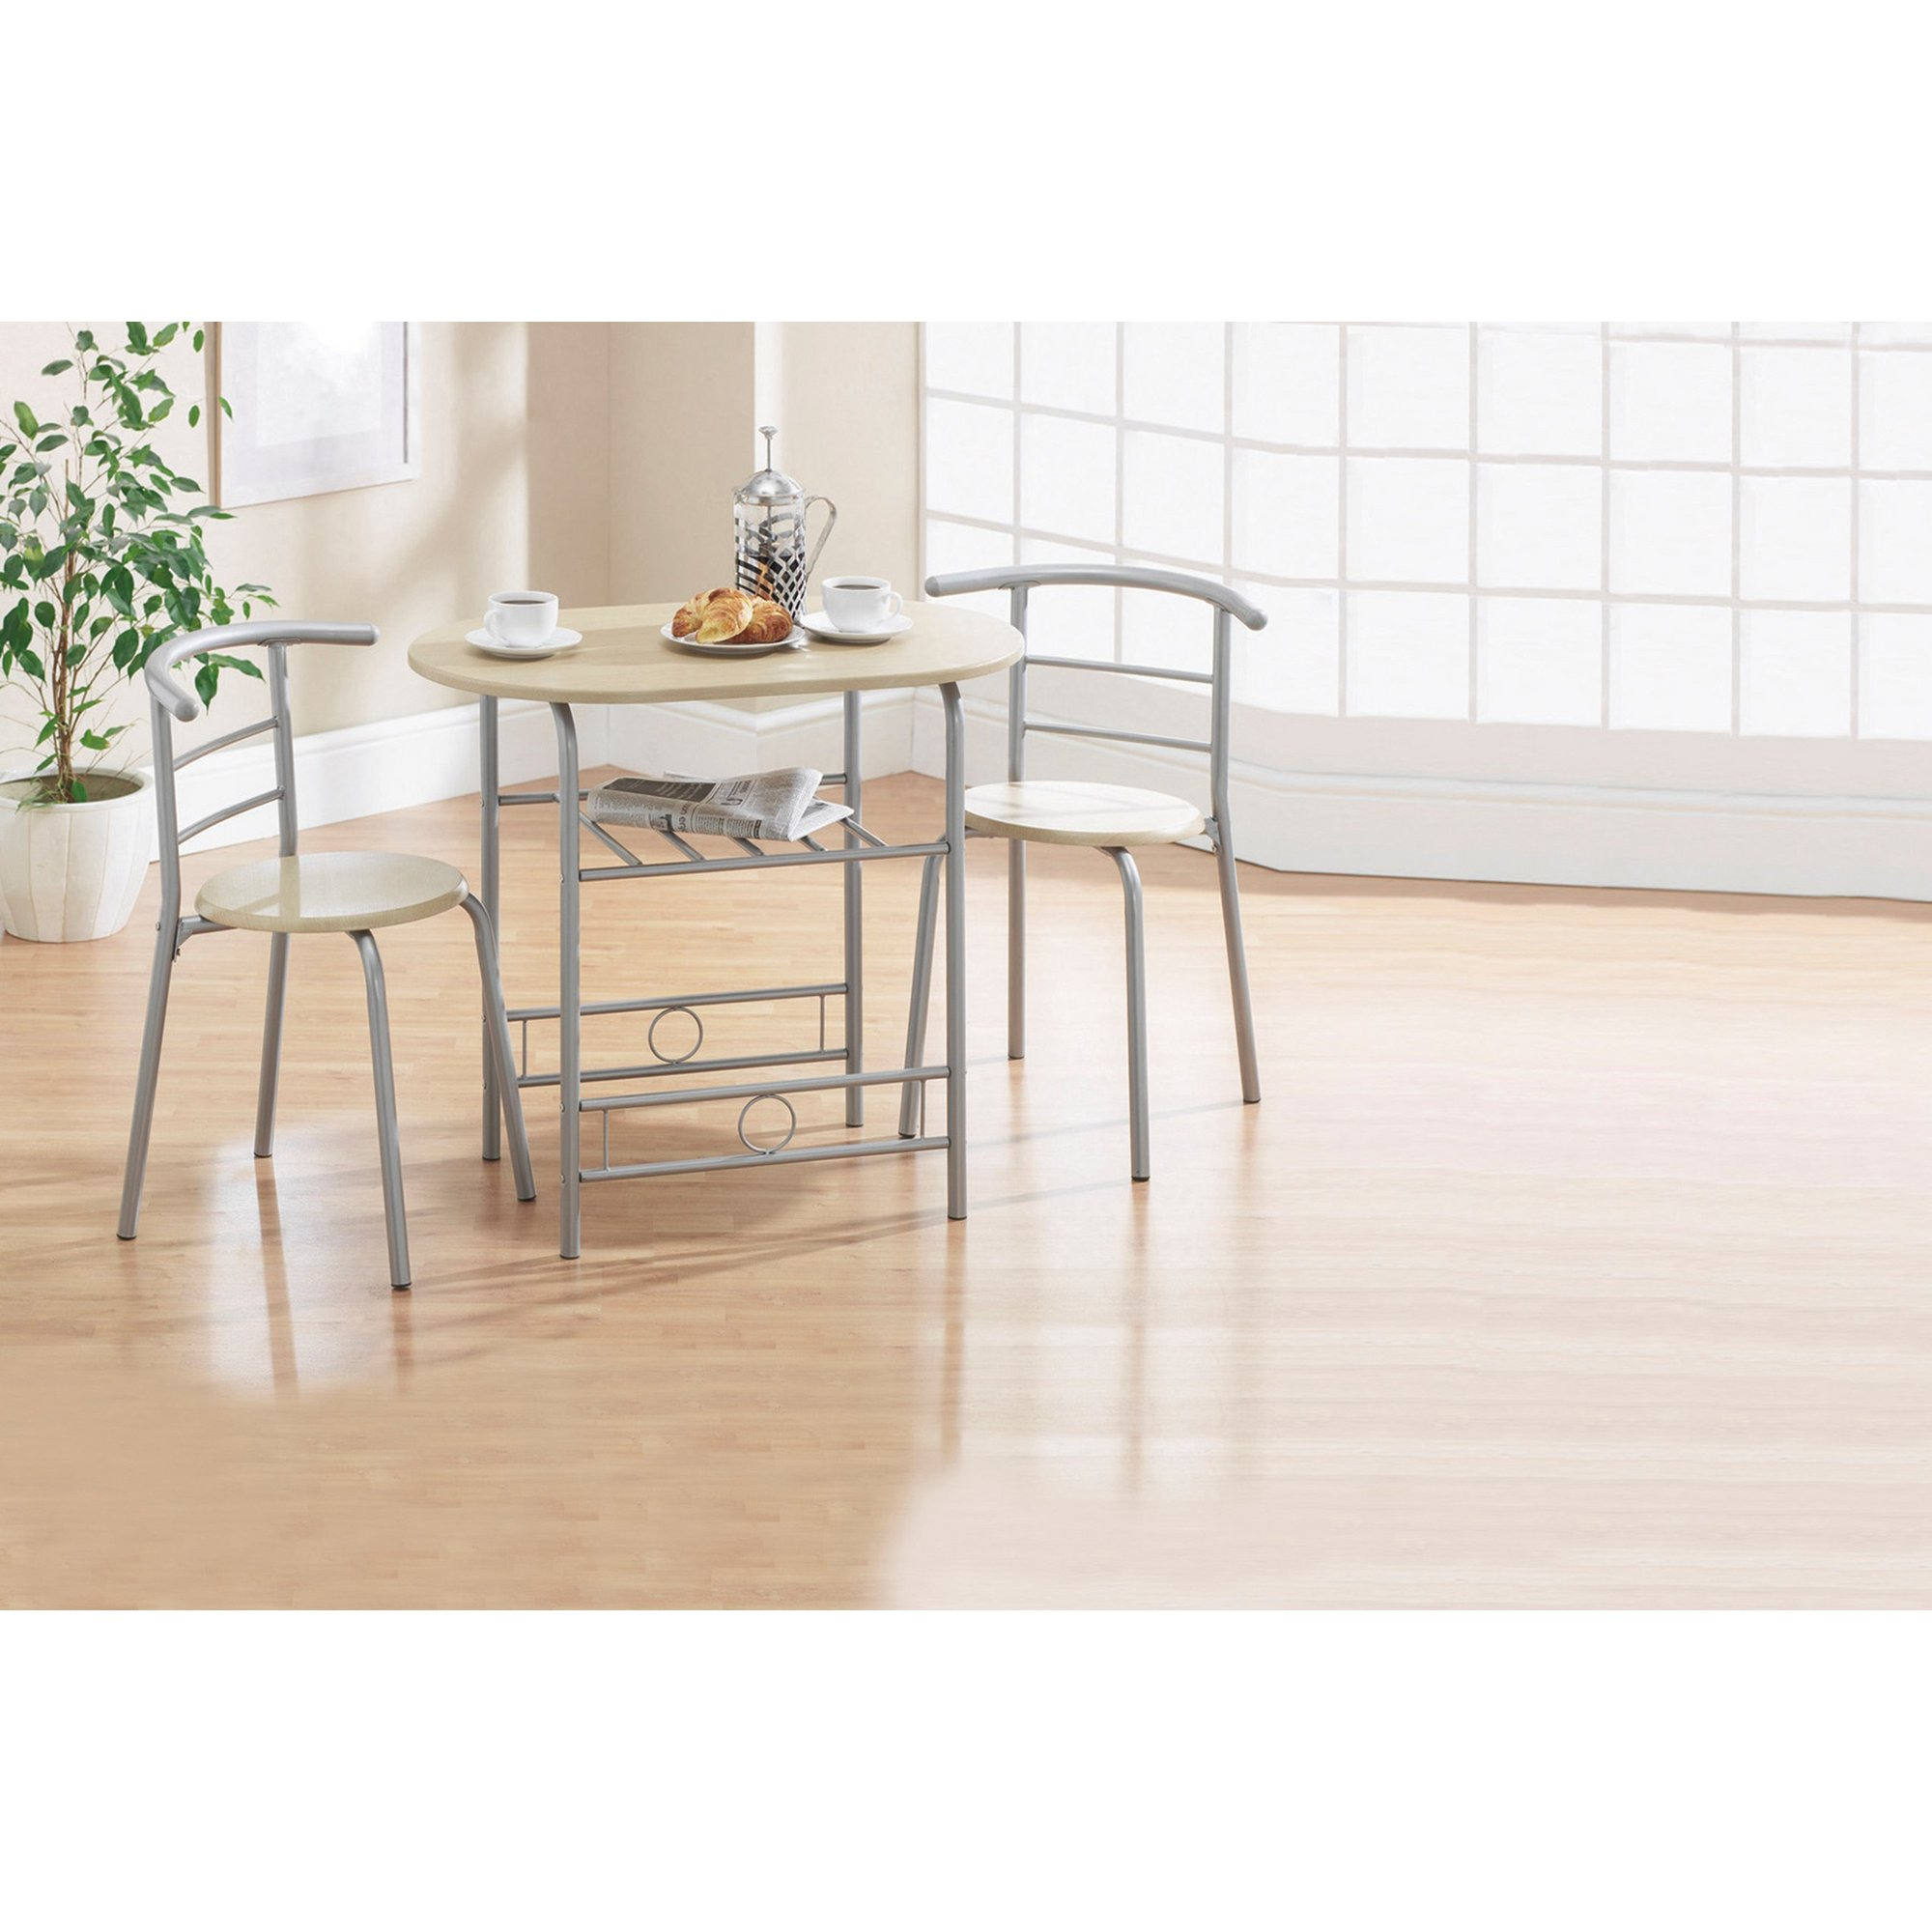 Image of Compact Dining Set